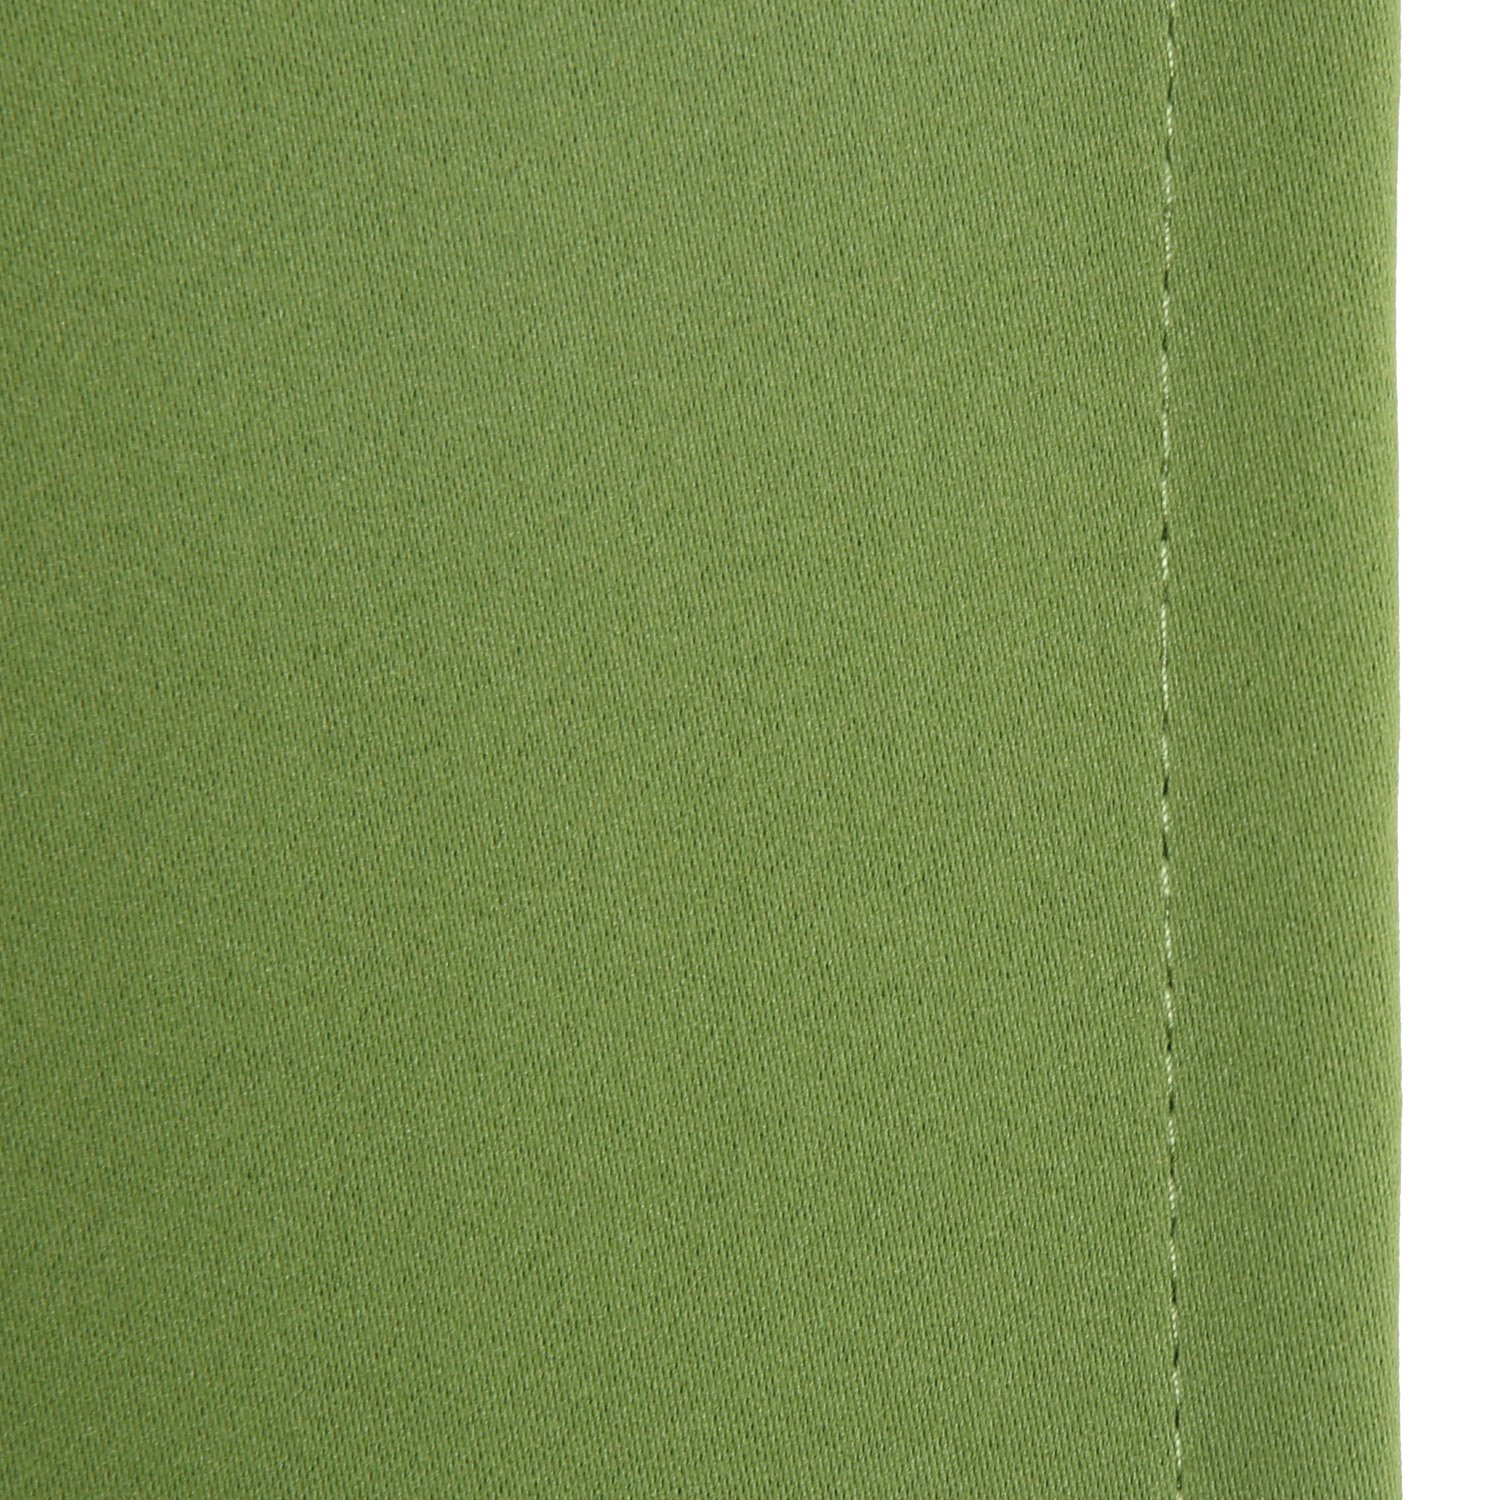 Deconovo 1 Panel Super Soft High Density Blinds Grommet Top Insulated Thermal Blackout Curtain for Kitchen Grass Green 52x95 Inch